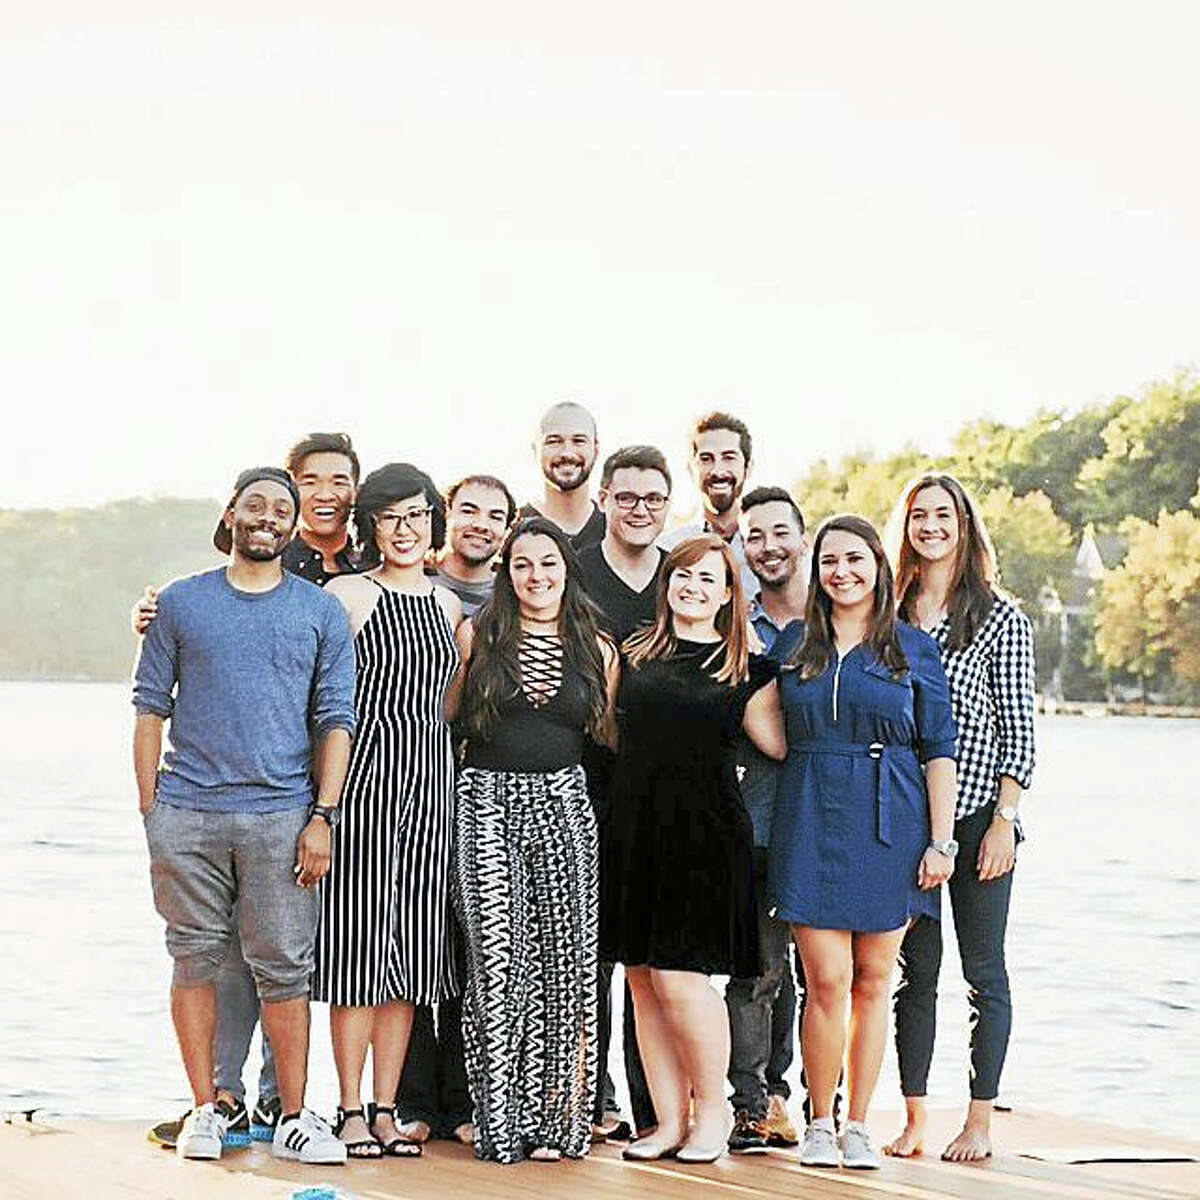 Saint Ann's Episcopal Church in Old Lyme will welcome The Lost Keys, with special guests the Lyme–Old Lyme Select Singers on Sunday, April 30 at 3 p.m.